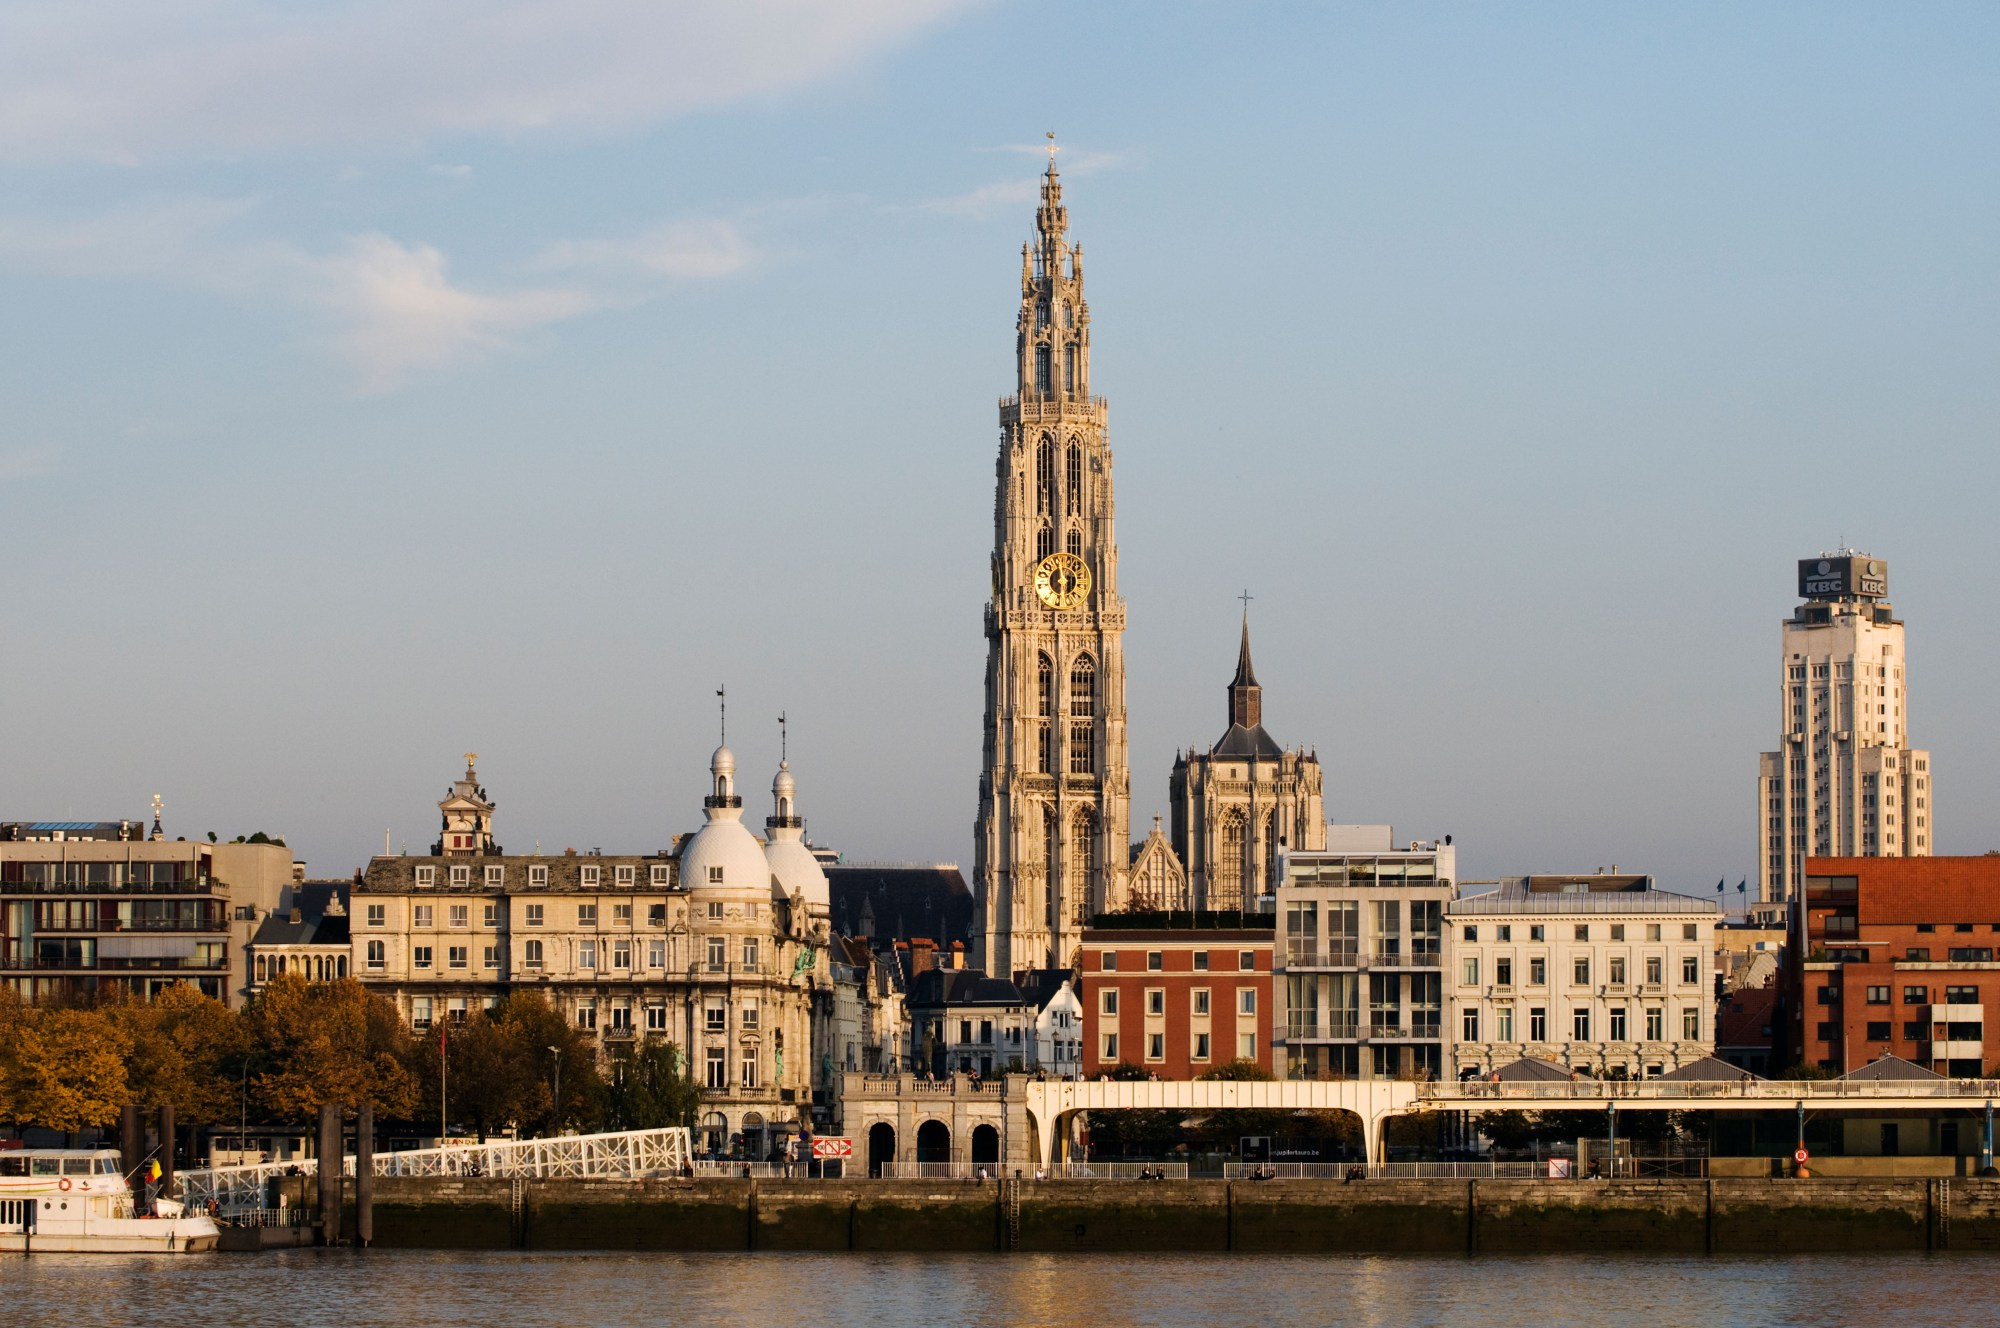 A 29-Year-Old Man Has Died After Being Arrested by Belgian Police